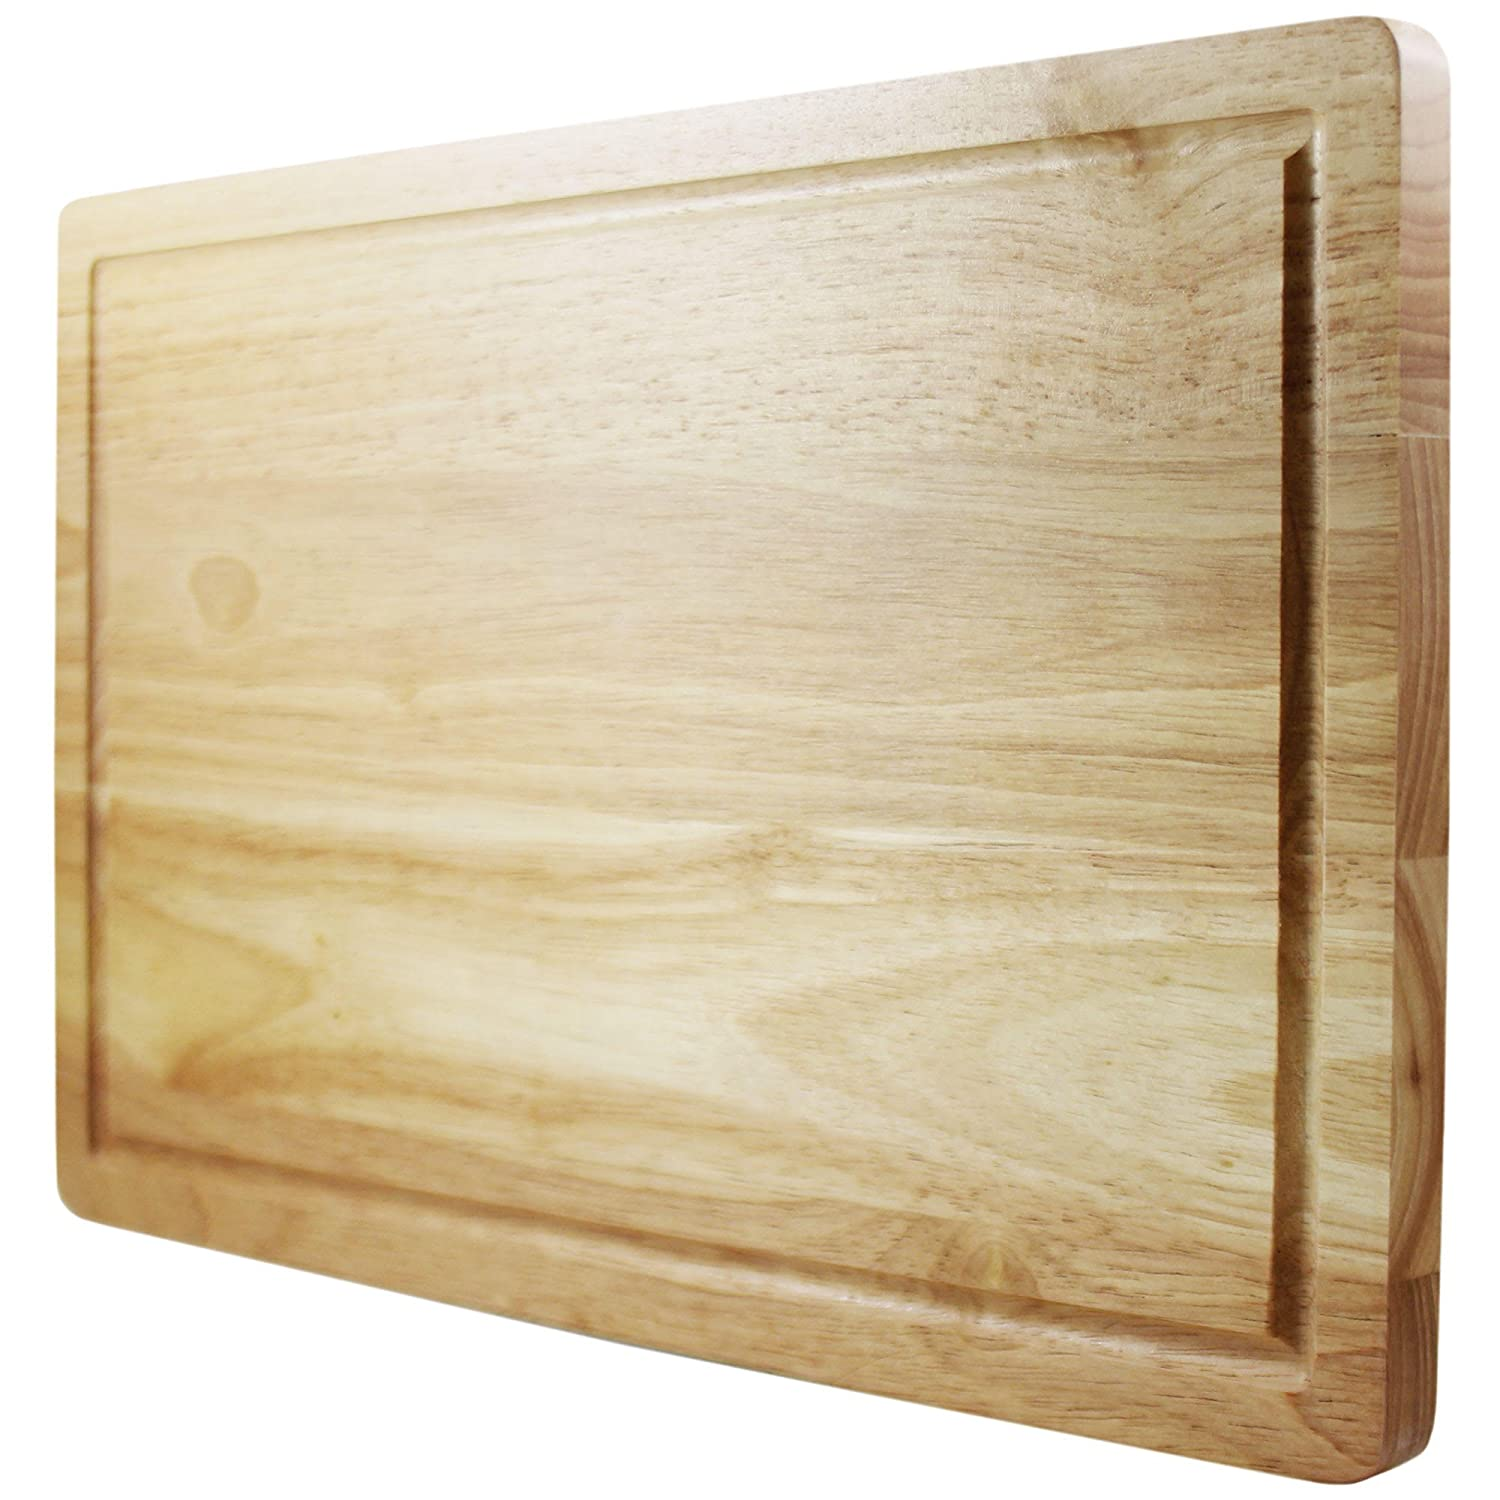 Chef Remi Cutting Board Lifetime Replacement Warranty Best Rated